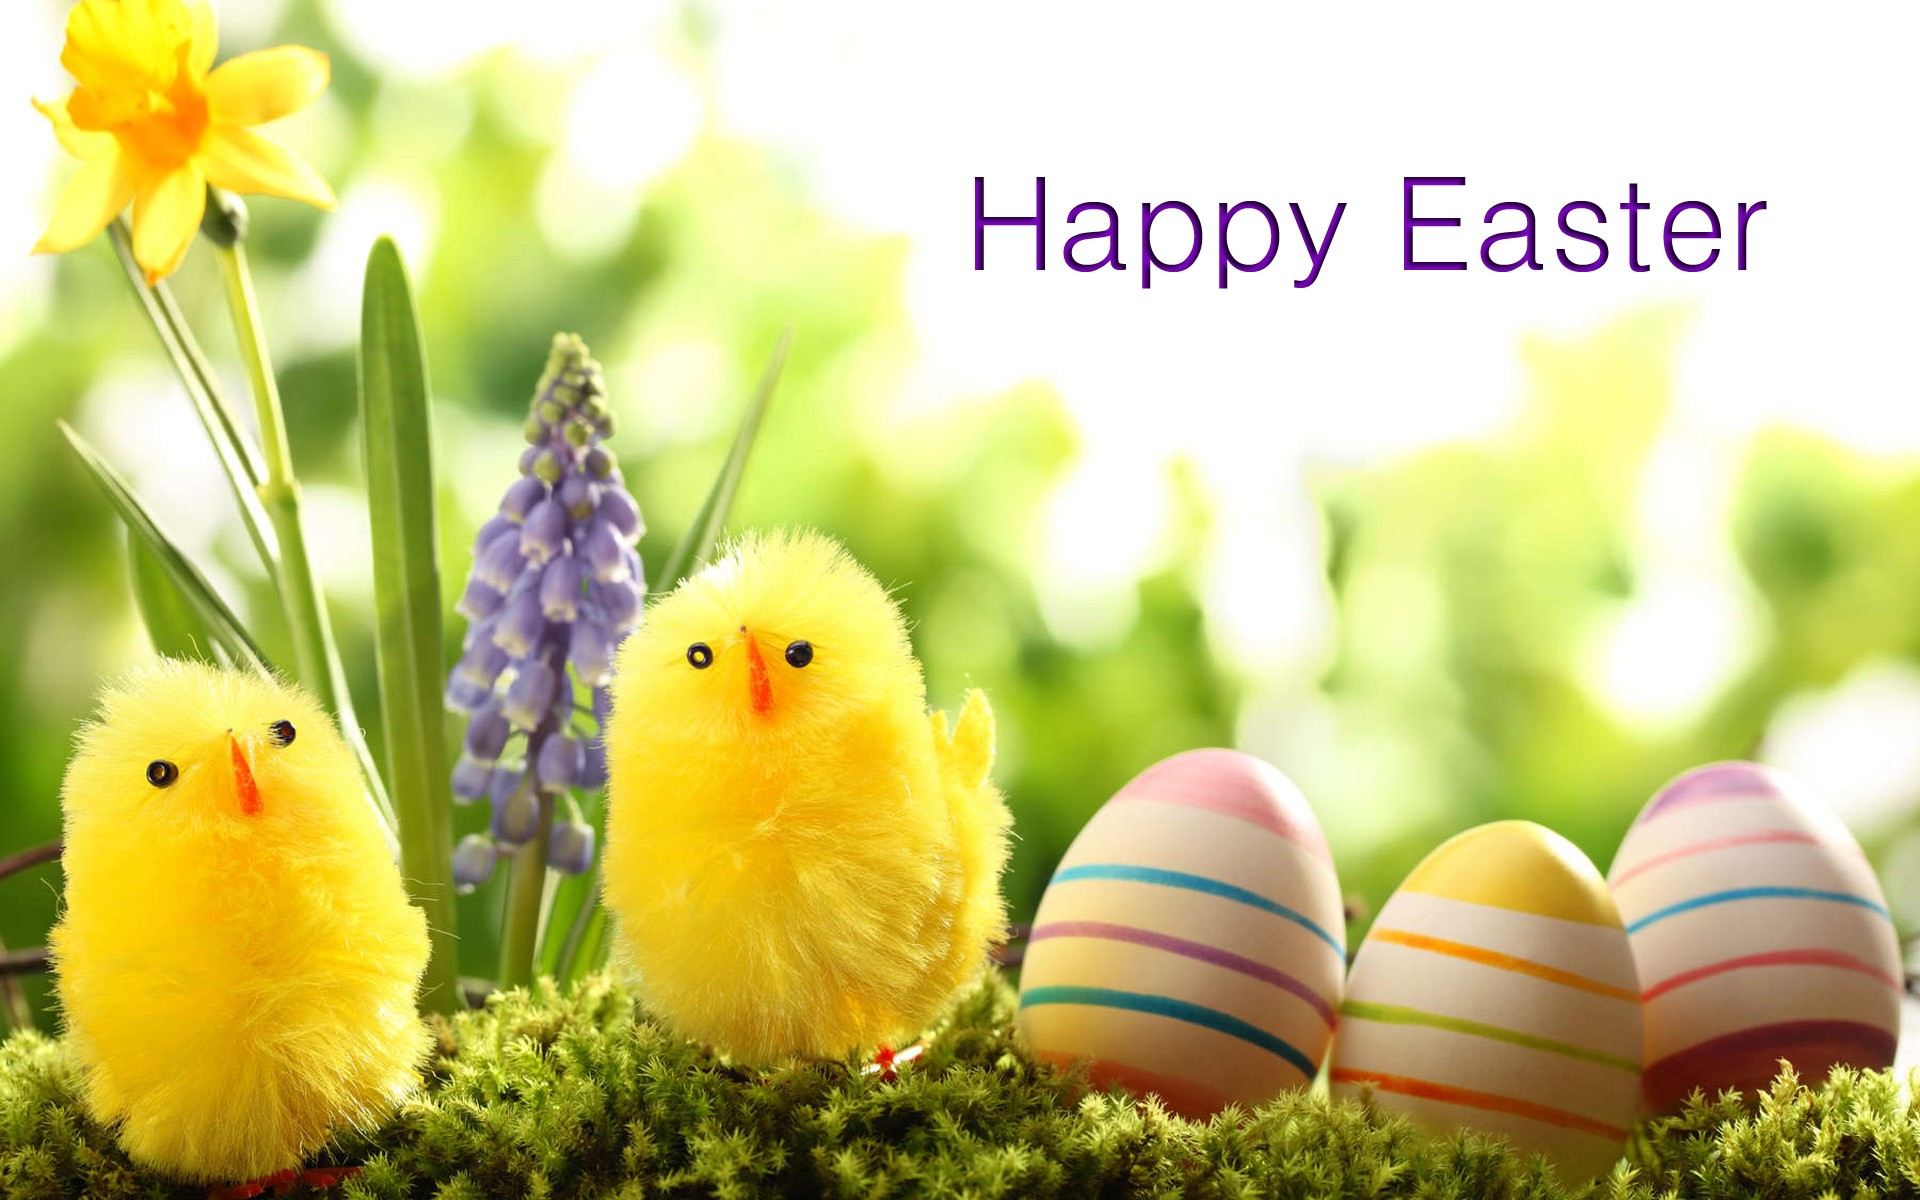 Easter Duck 2018 Wallpapers   New HD Wallpapers 1920x1200